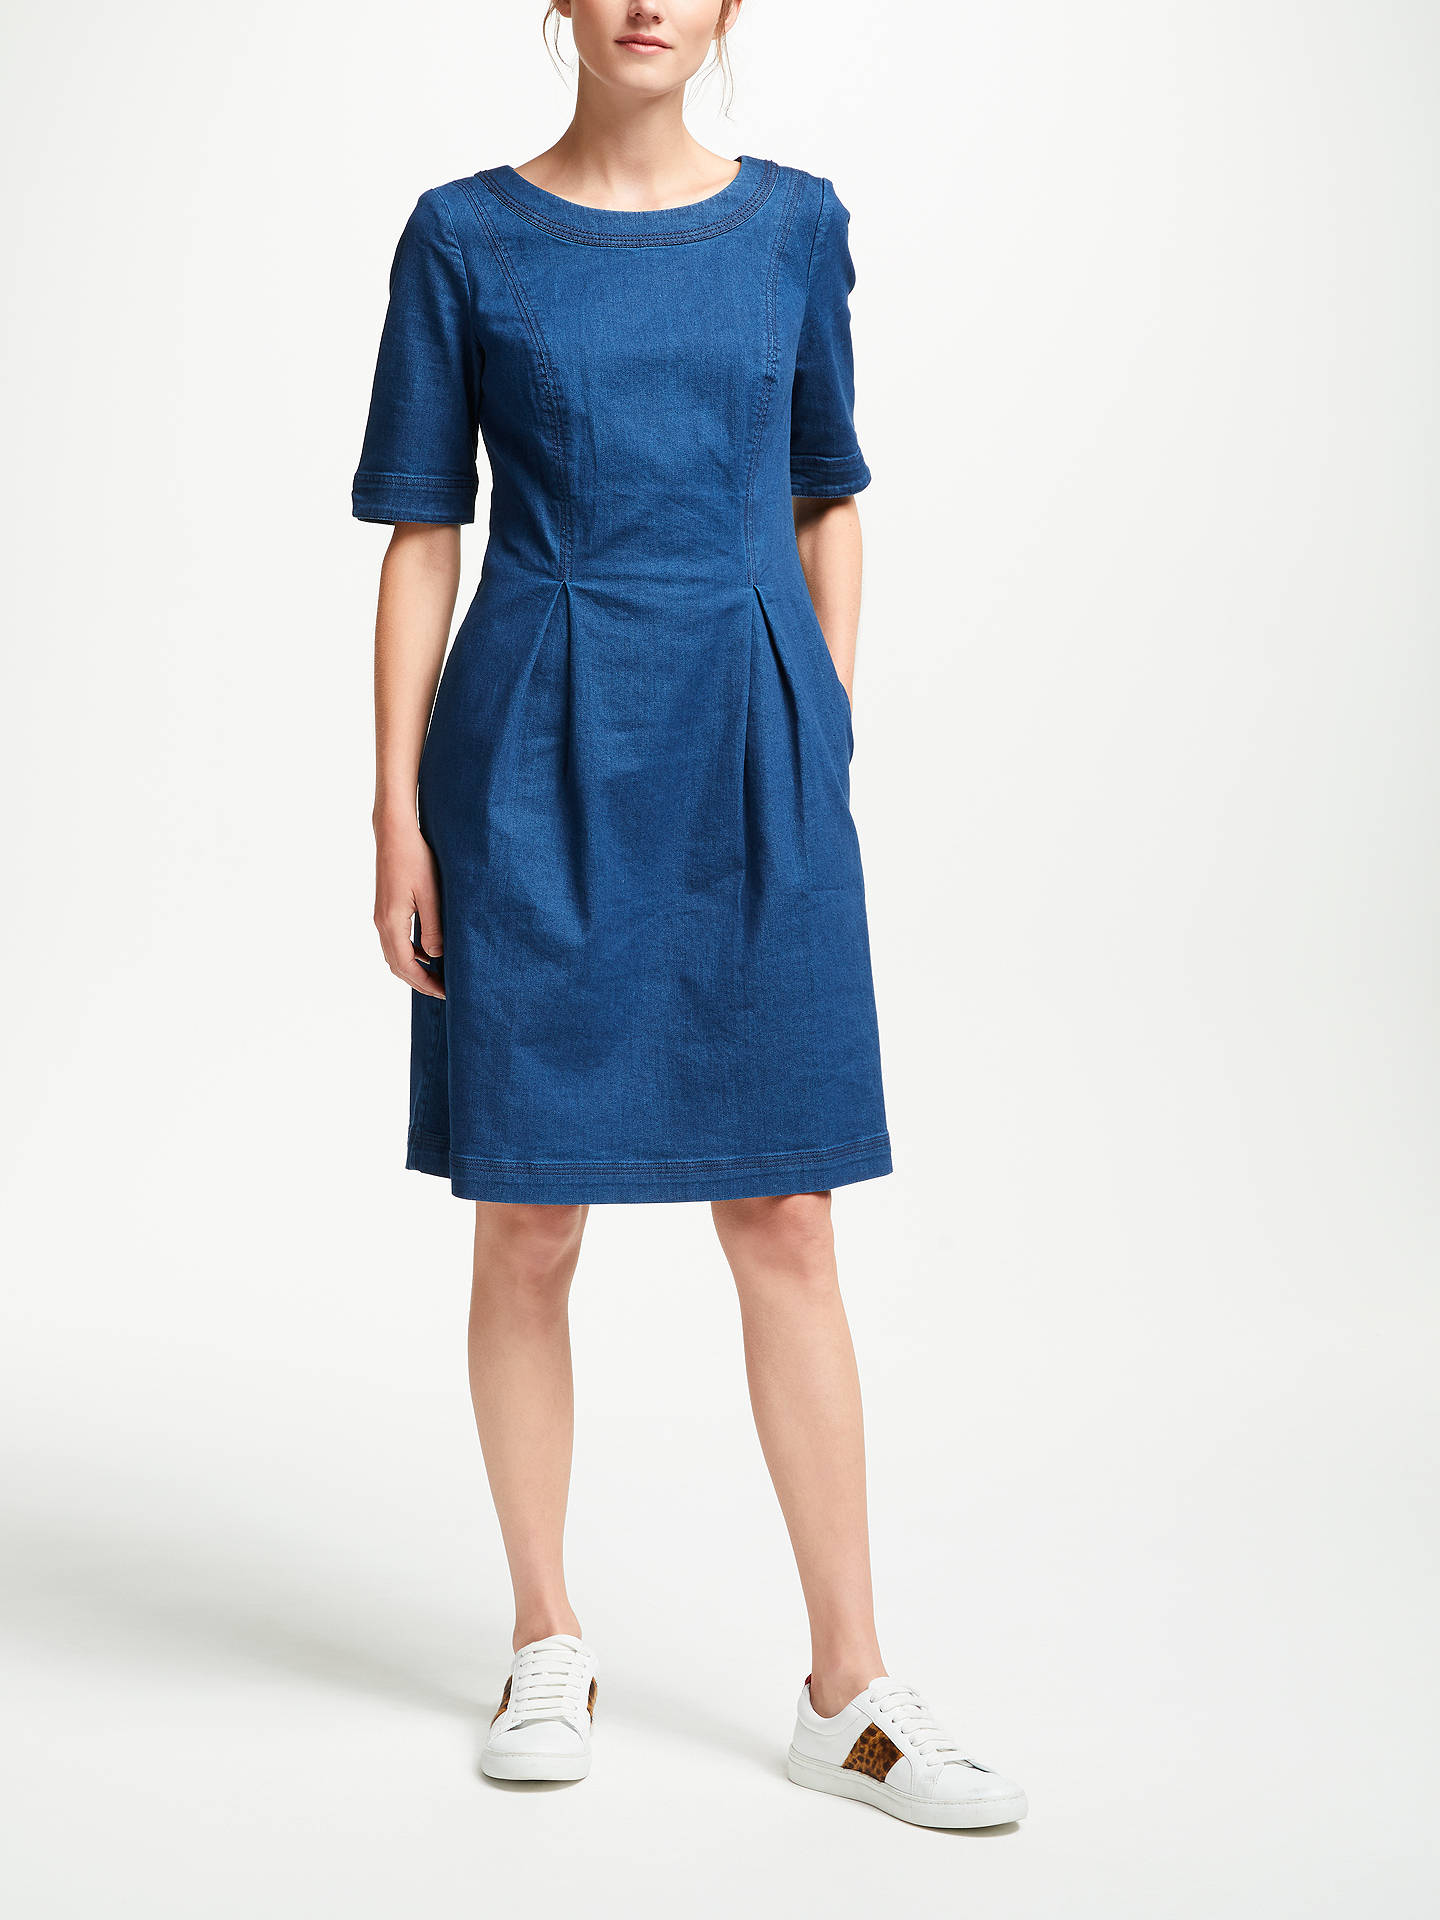 BuyBoden Alice Denim Dress, Bright Blue, 10 Online at johnlewis.com